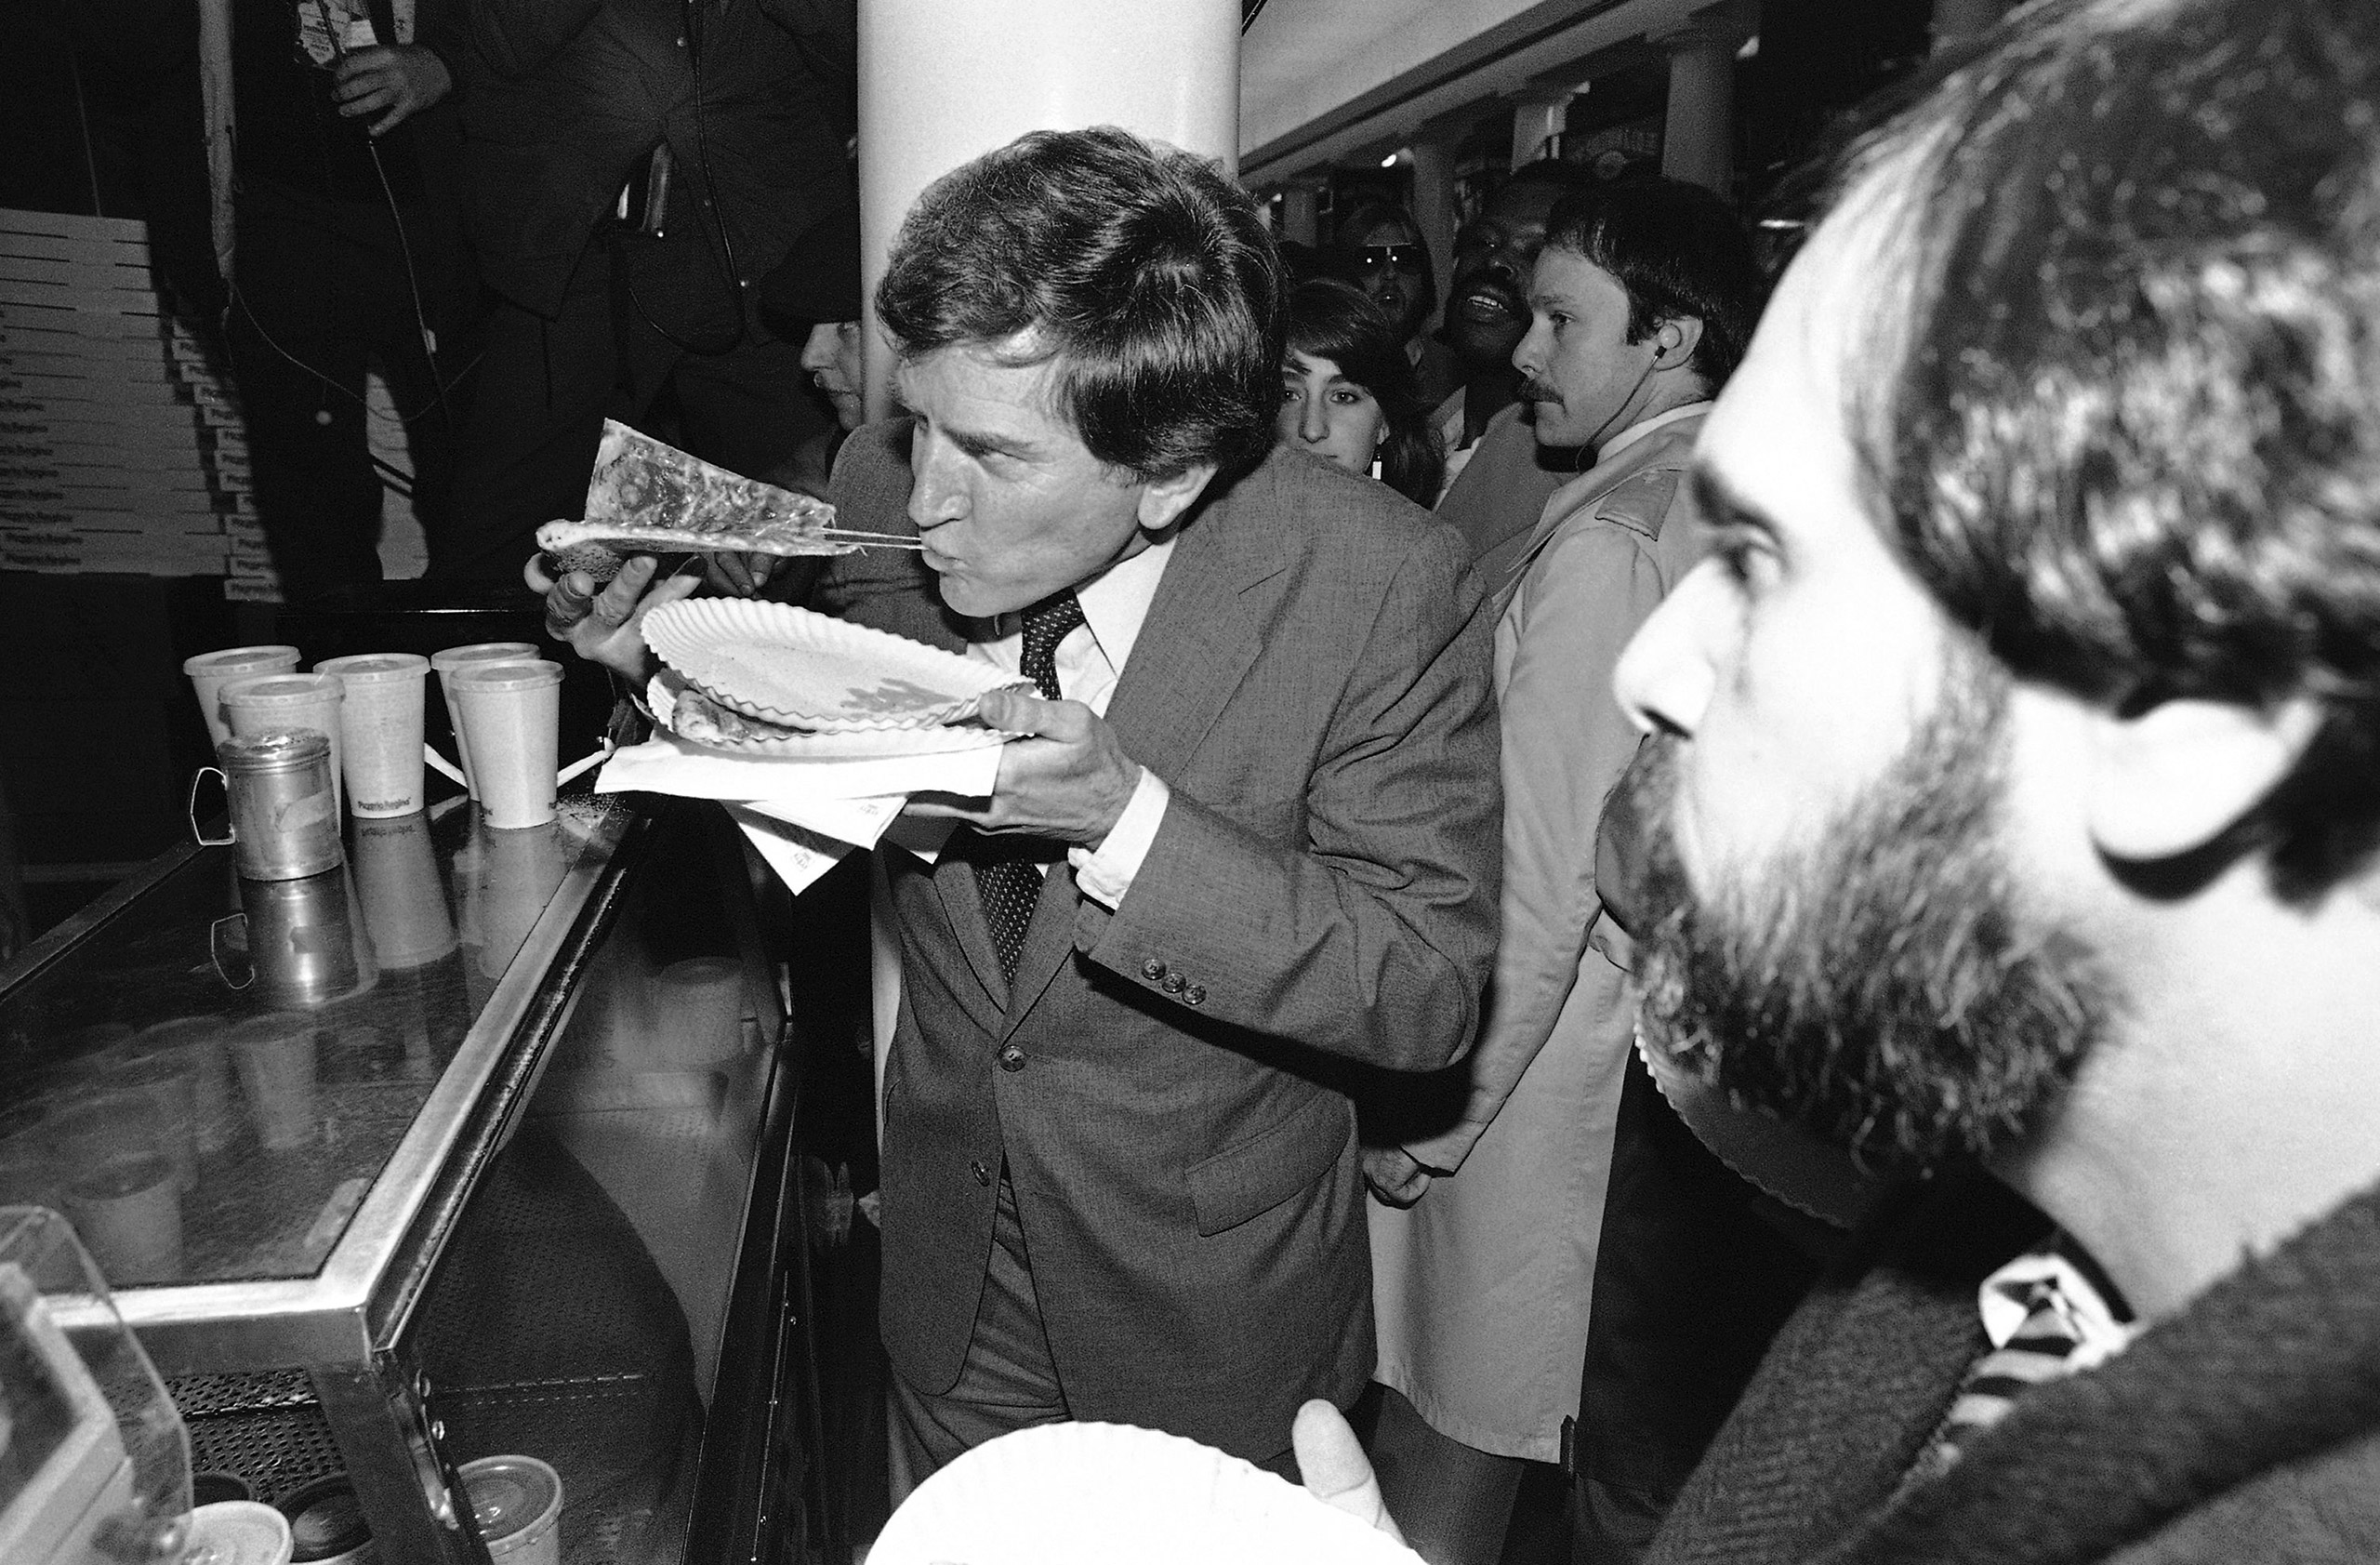 Sen. Gary Hart bites into a slice of pizza while on the campaign trail in Boston's historic Faneuil Hall district, March 5, 1984.